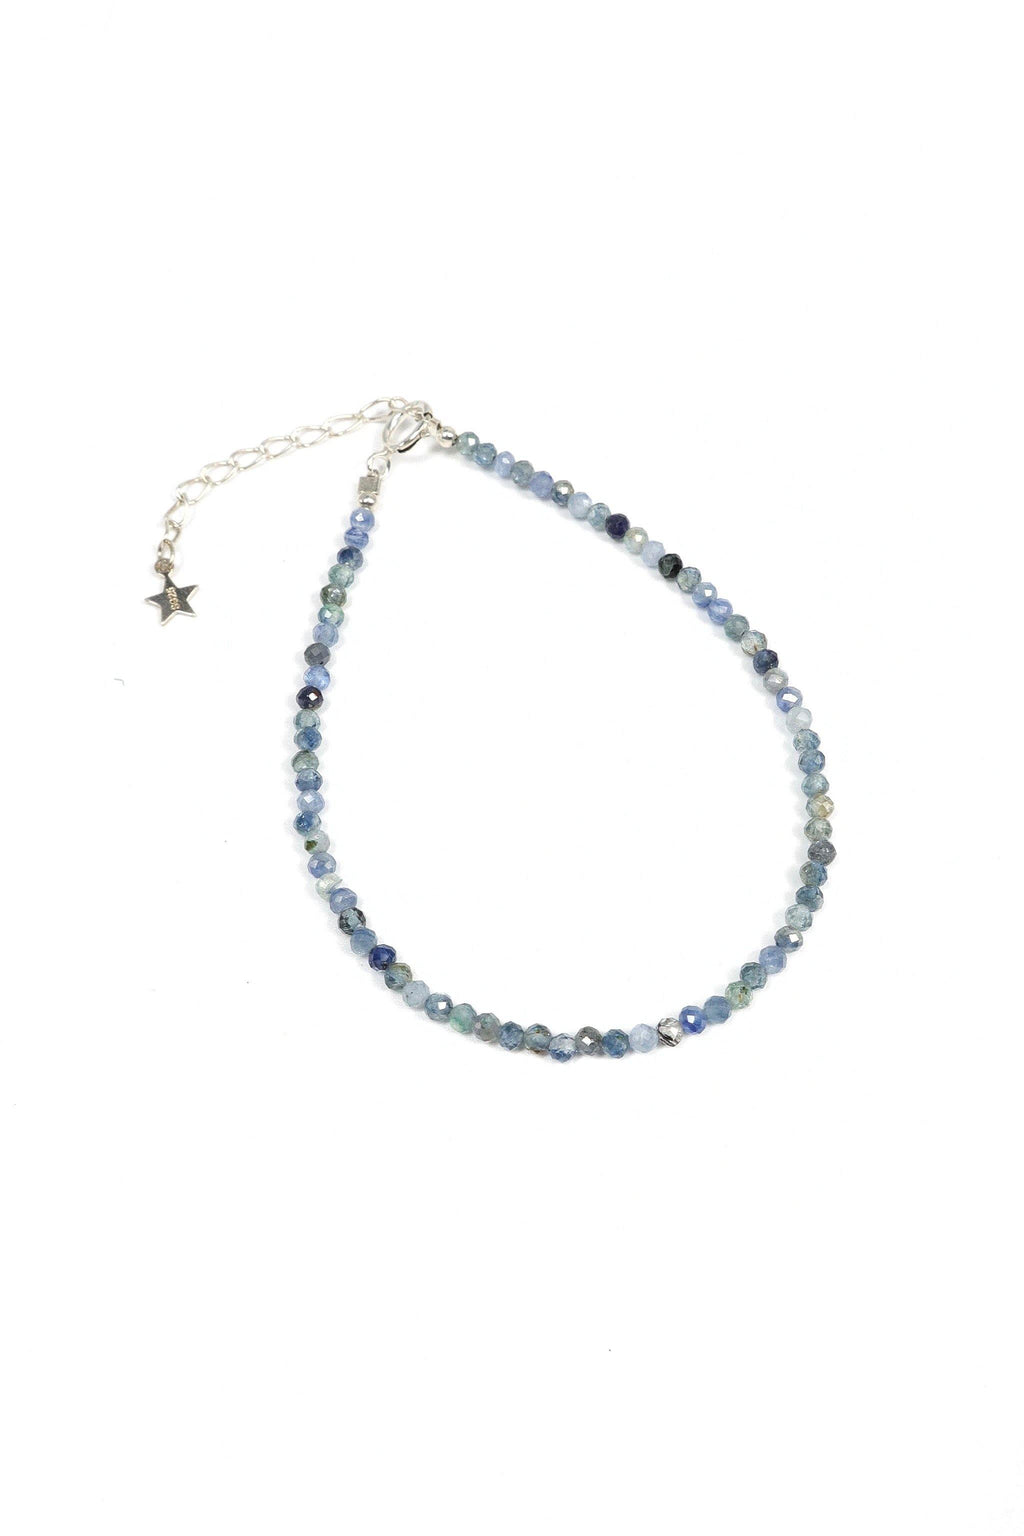 This is a dainty gemstone bracelet made with 2mm faceted Iolite gemstones and a sterling silver clasp